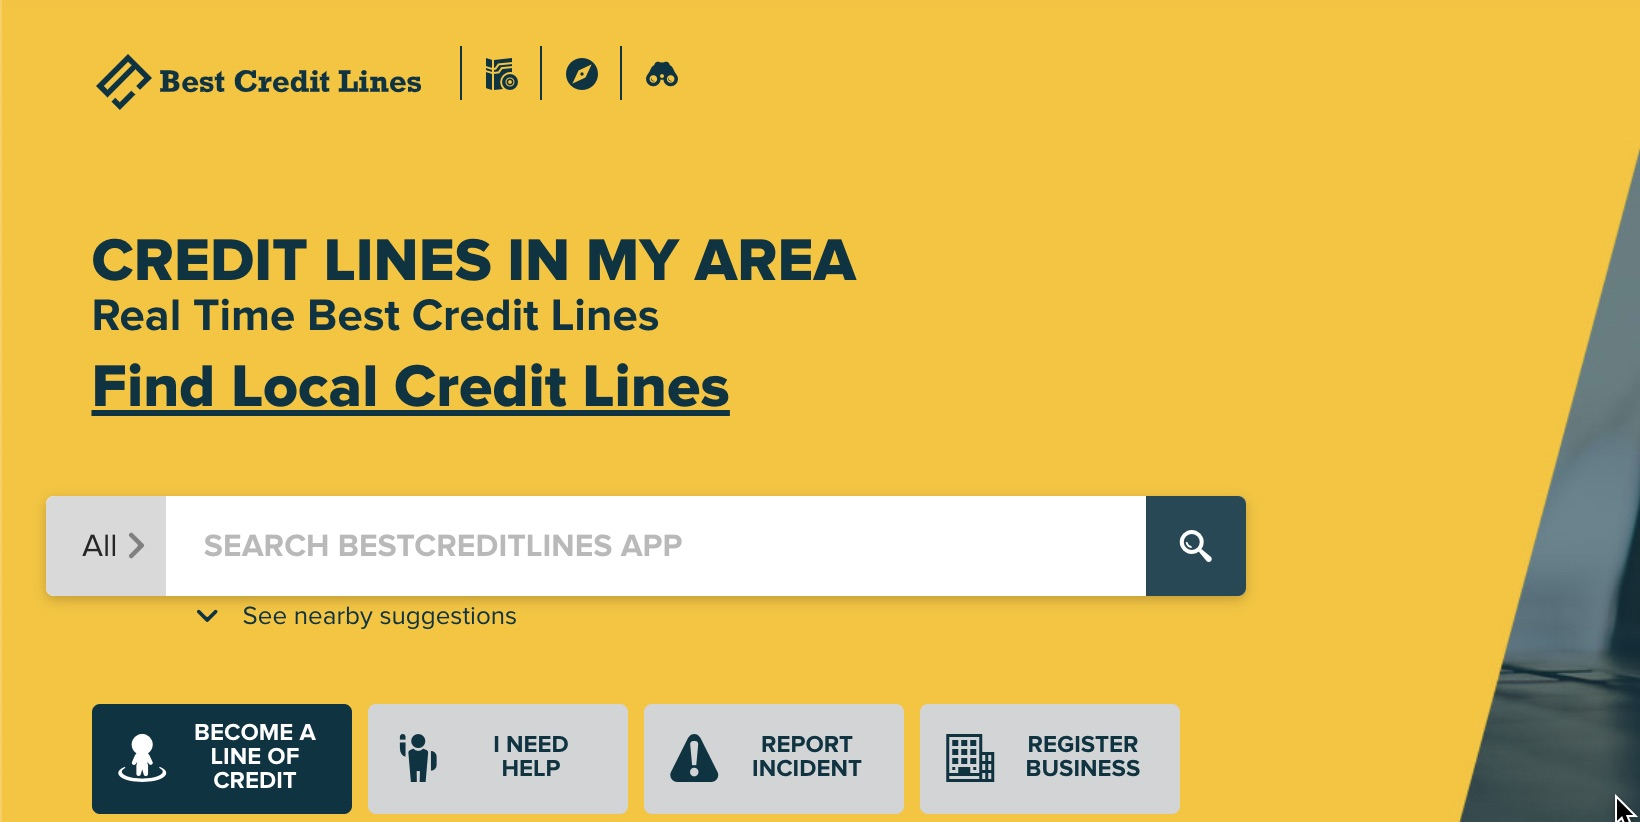 bestcreditlines.app.net website